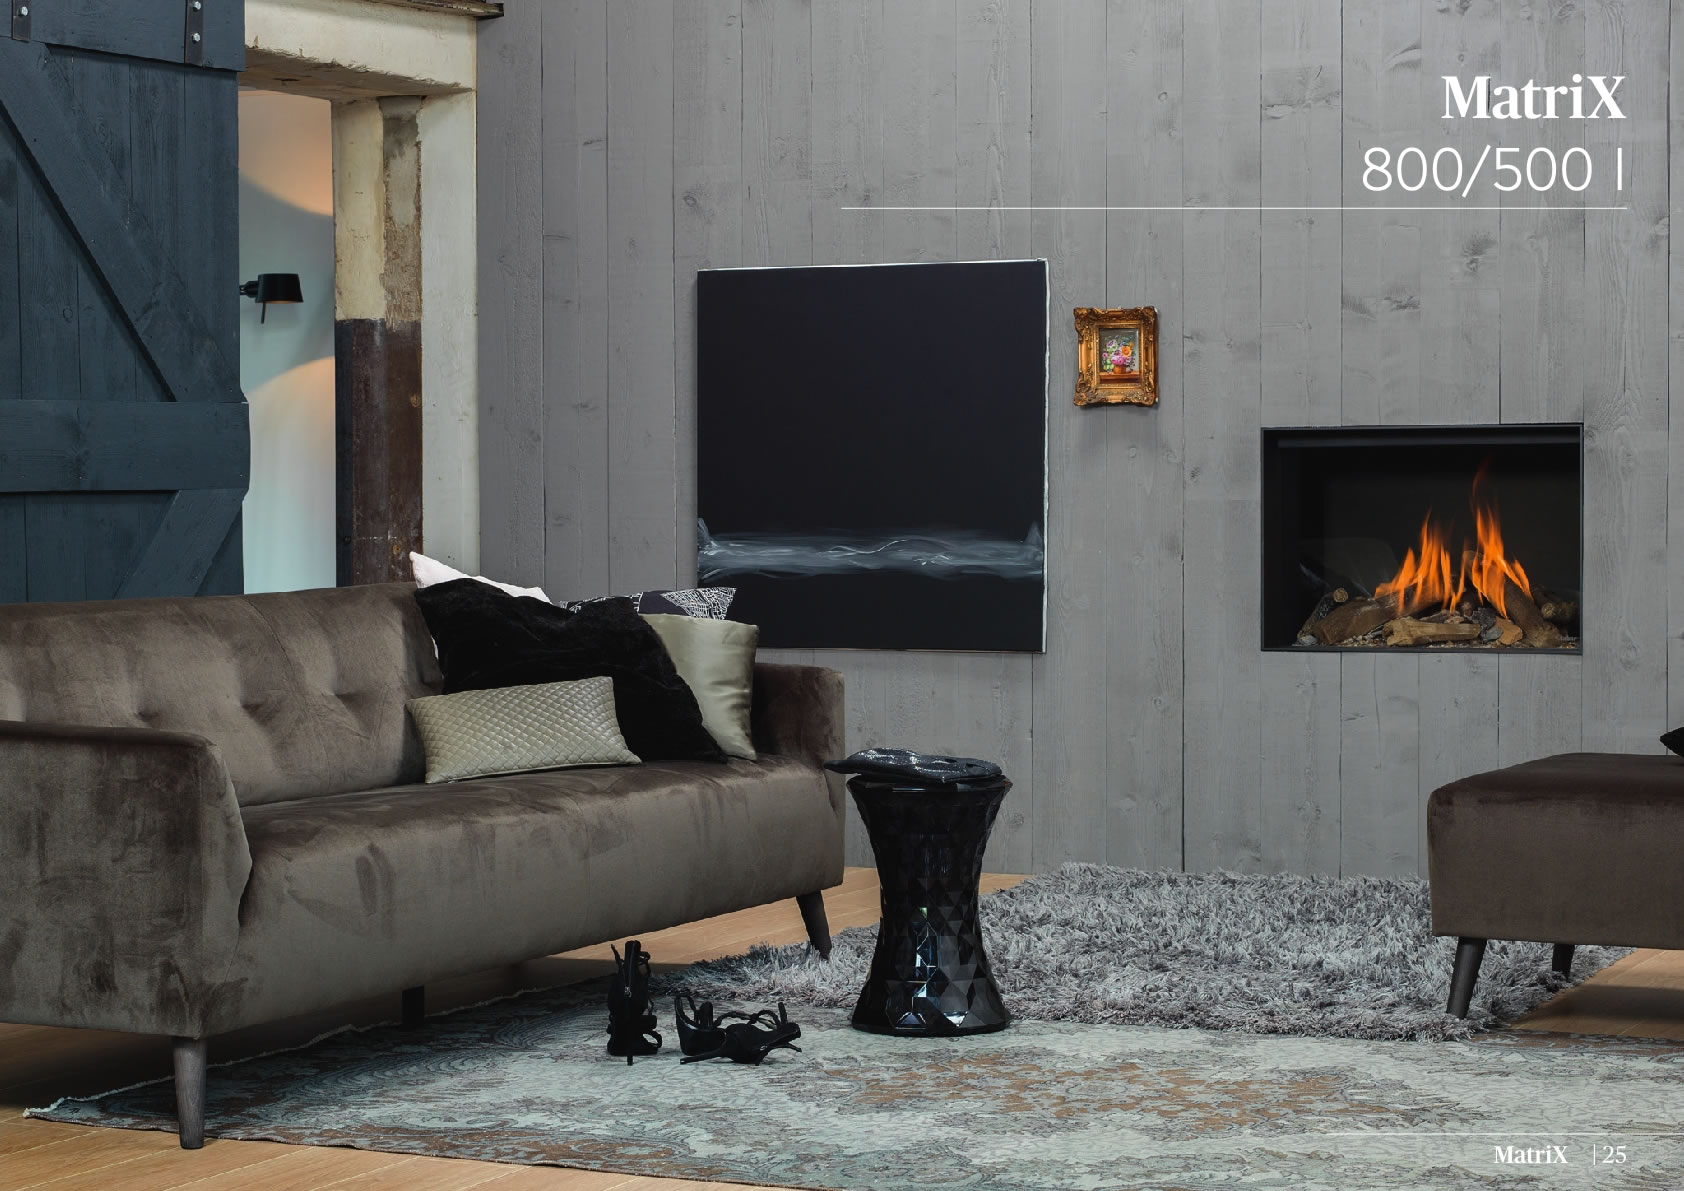 Faber Natural Gas Fireplaces - Matrix 800 / 500 I